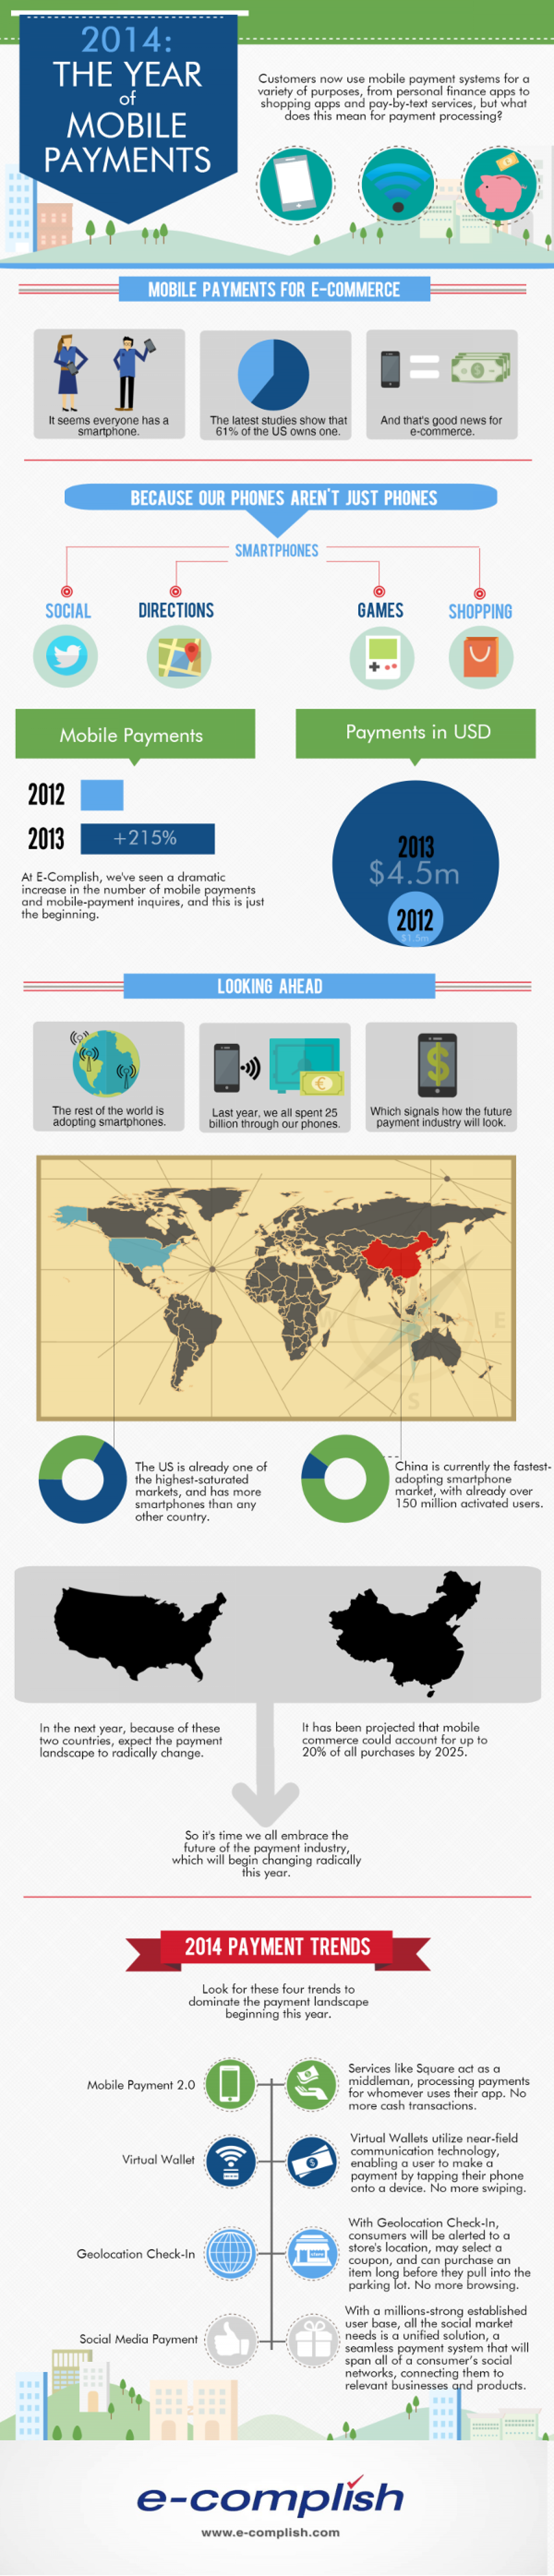 2014: The Year of Mobile Payments Infographic